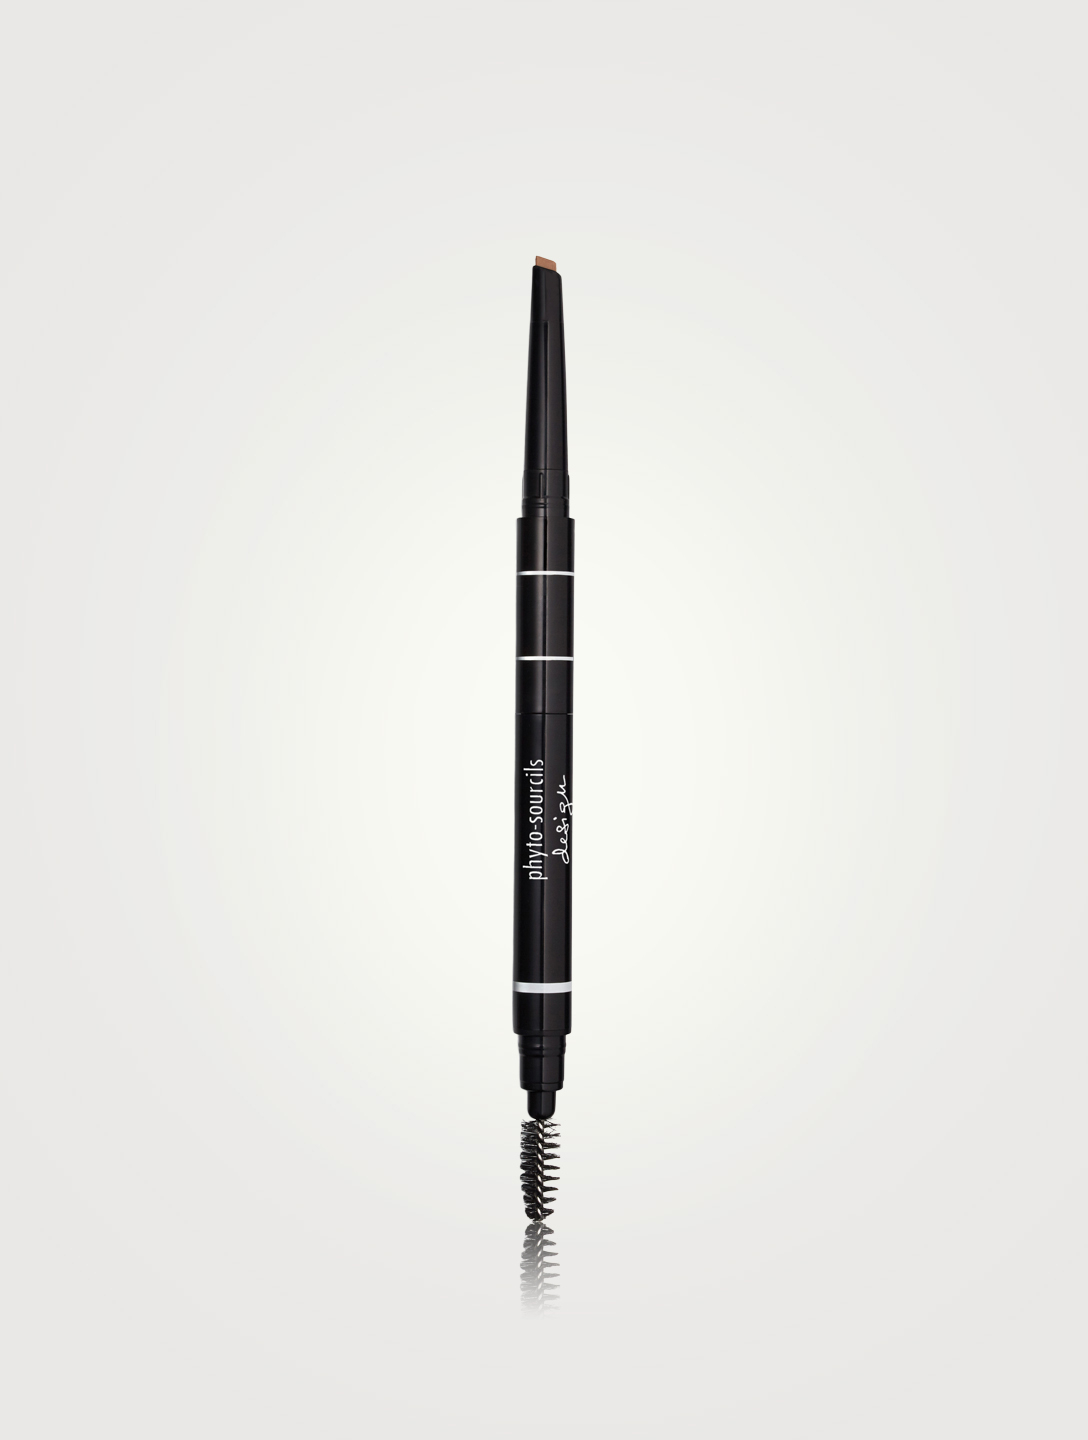 SISLEY-PARIS Phyto-Sourcils Design 3-in-1 Architect Pencil Beauty Neutral